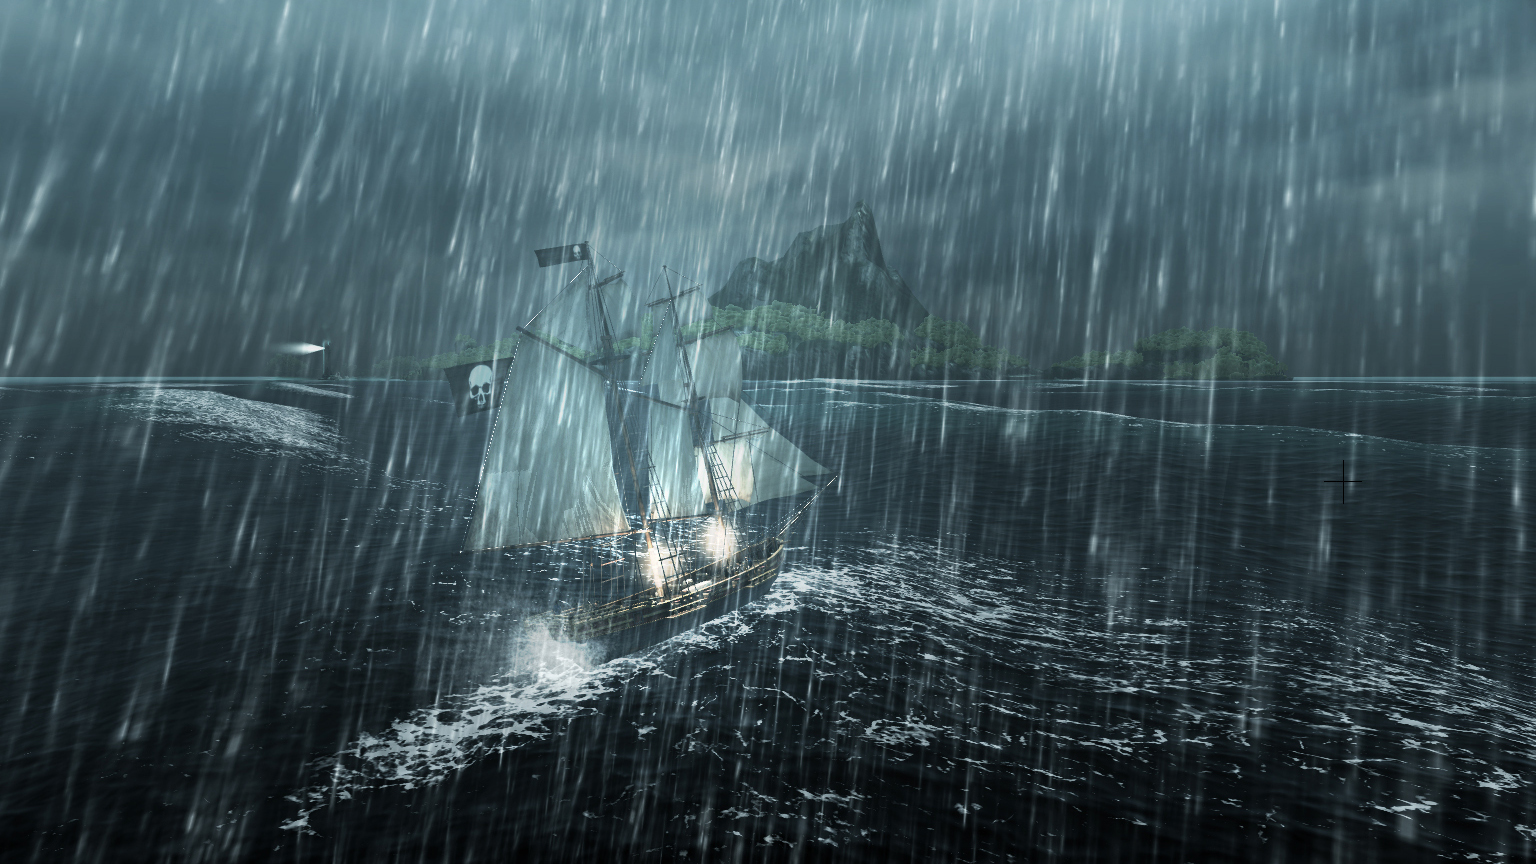 Assassin's Creed Pirates Set One Year After Assassin's Creed 4 #28806